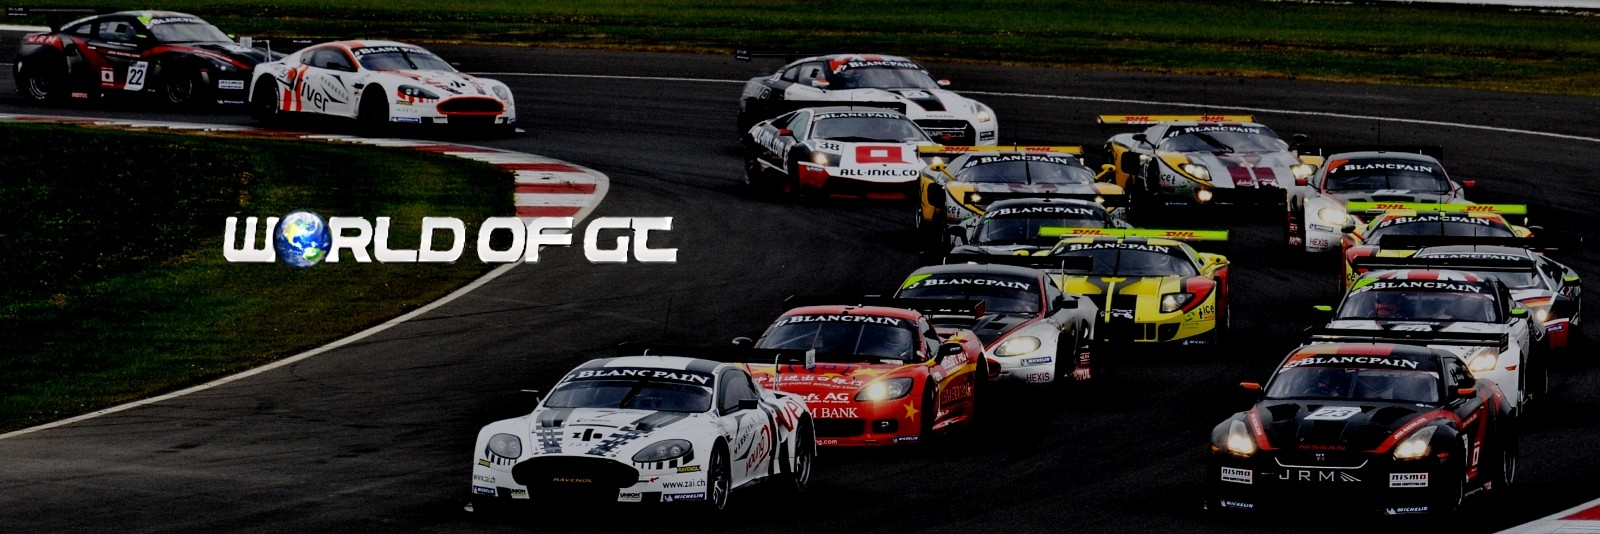 WORLD OF GT CHAMPIONSHIPS!